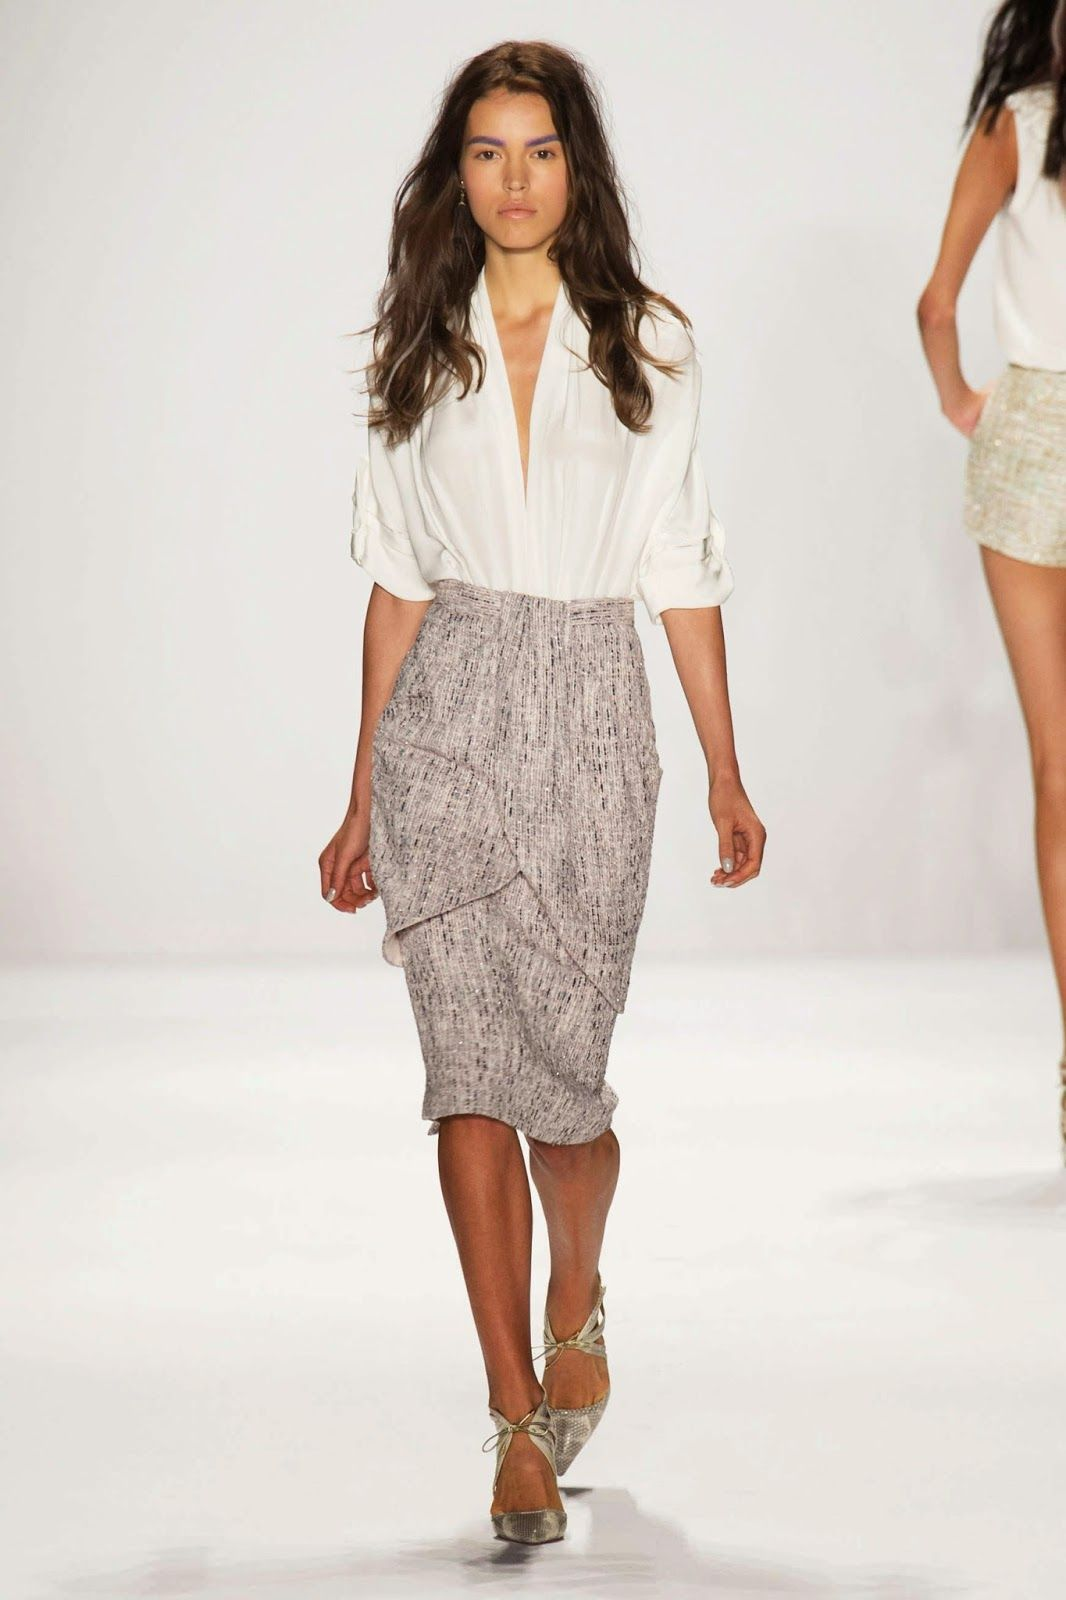 dbcb5984b The OAK: #NYFW:Badgley Mischka, Tweed pencil skirt and deep v-neck blouse.  Modest.